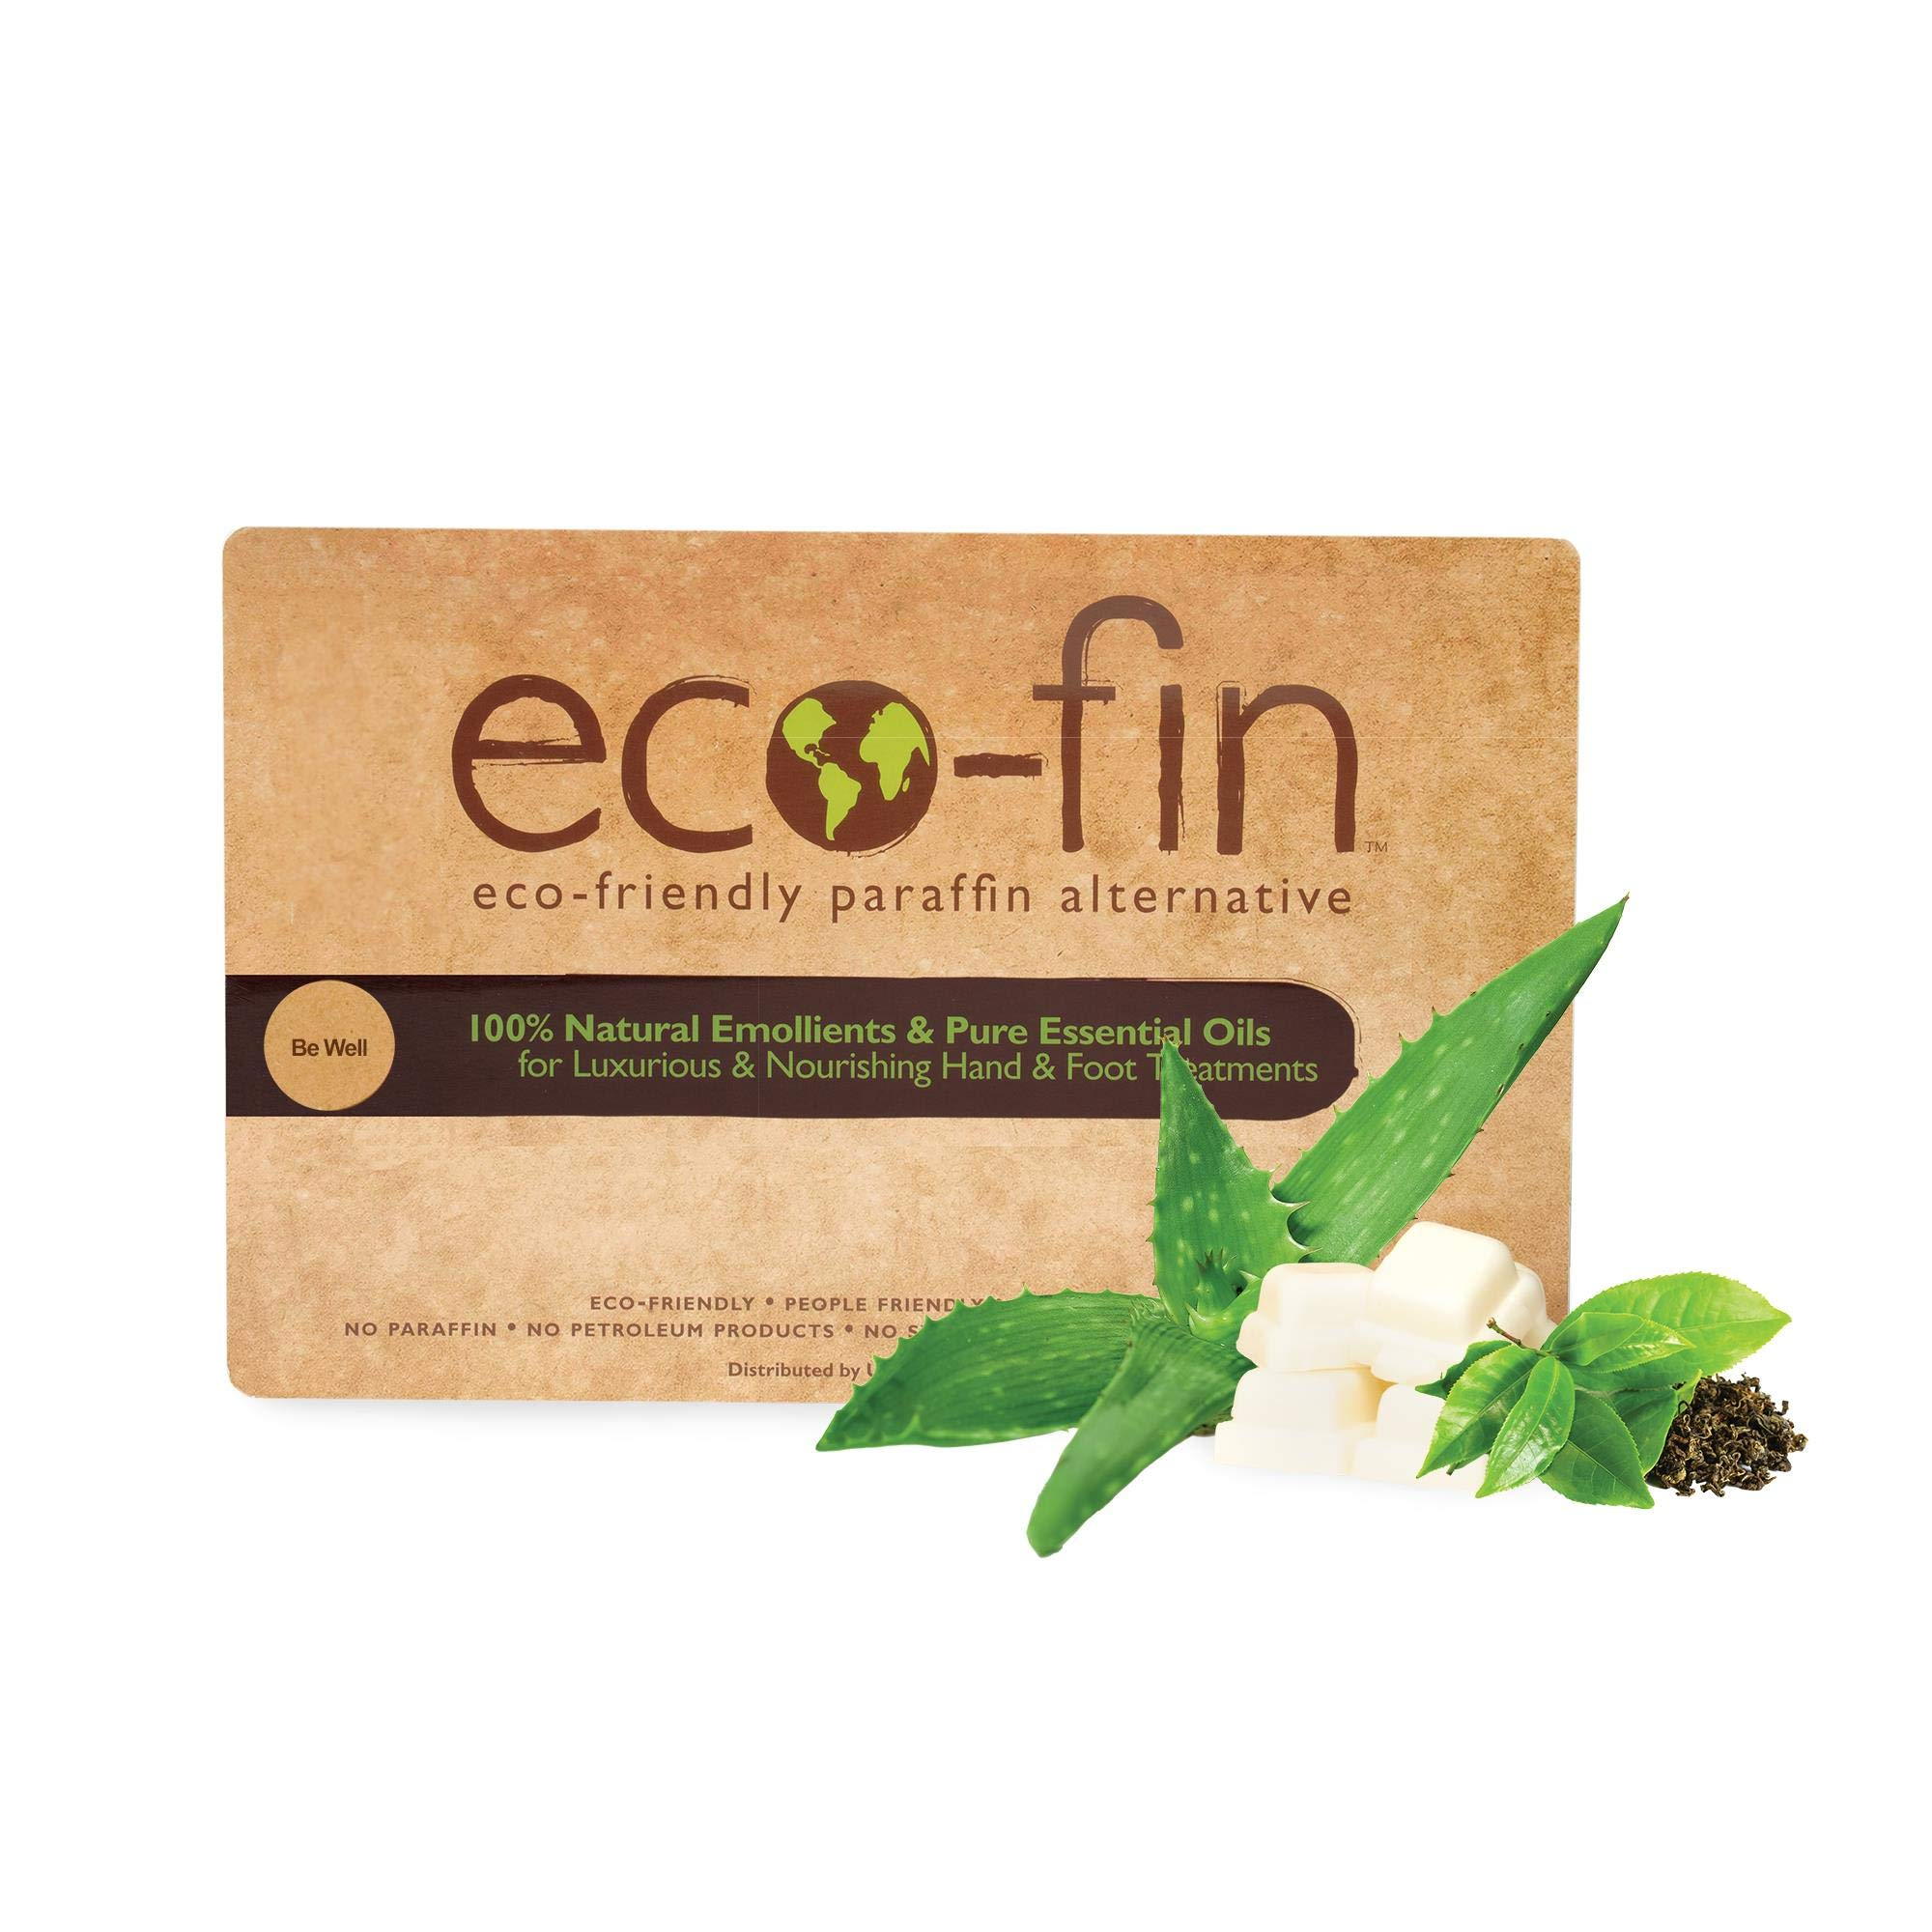 Eco-Fin Be Well Paraffin Wax Alternative   100% Plant-Based, Green Tea & Aloe Blend   40 Pc. Tray by eco-fin